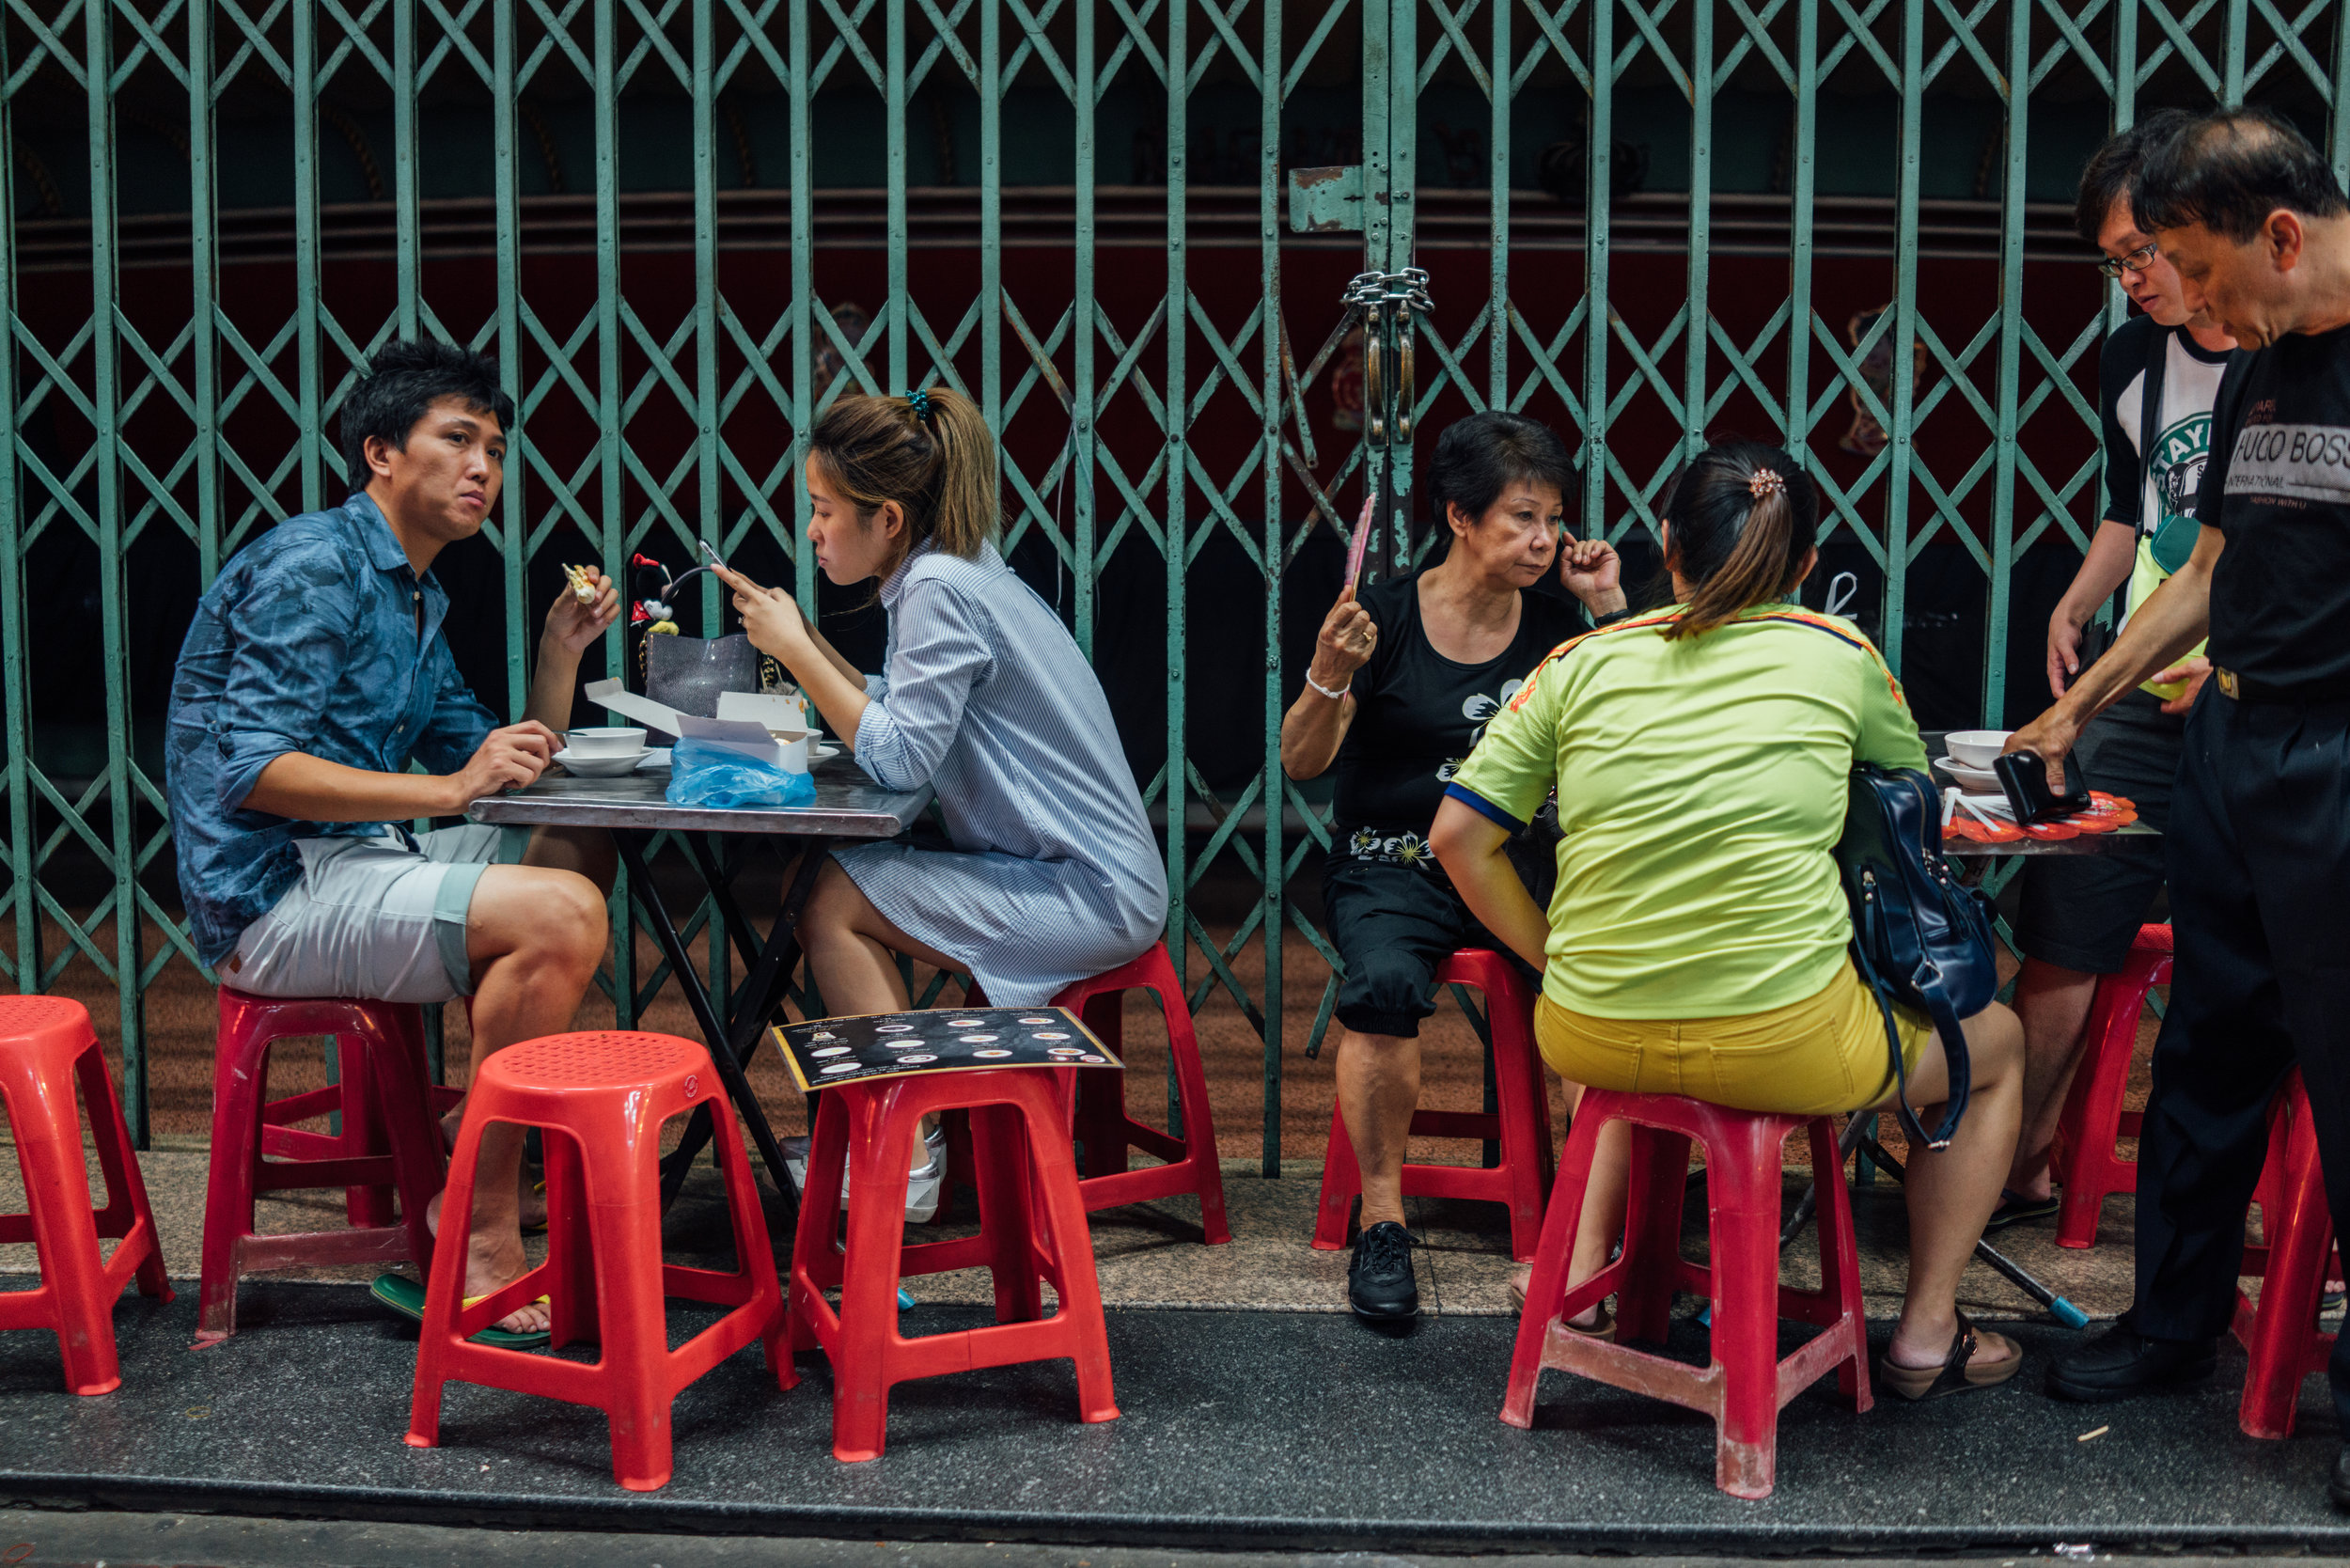 Lunch time in Bangkok